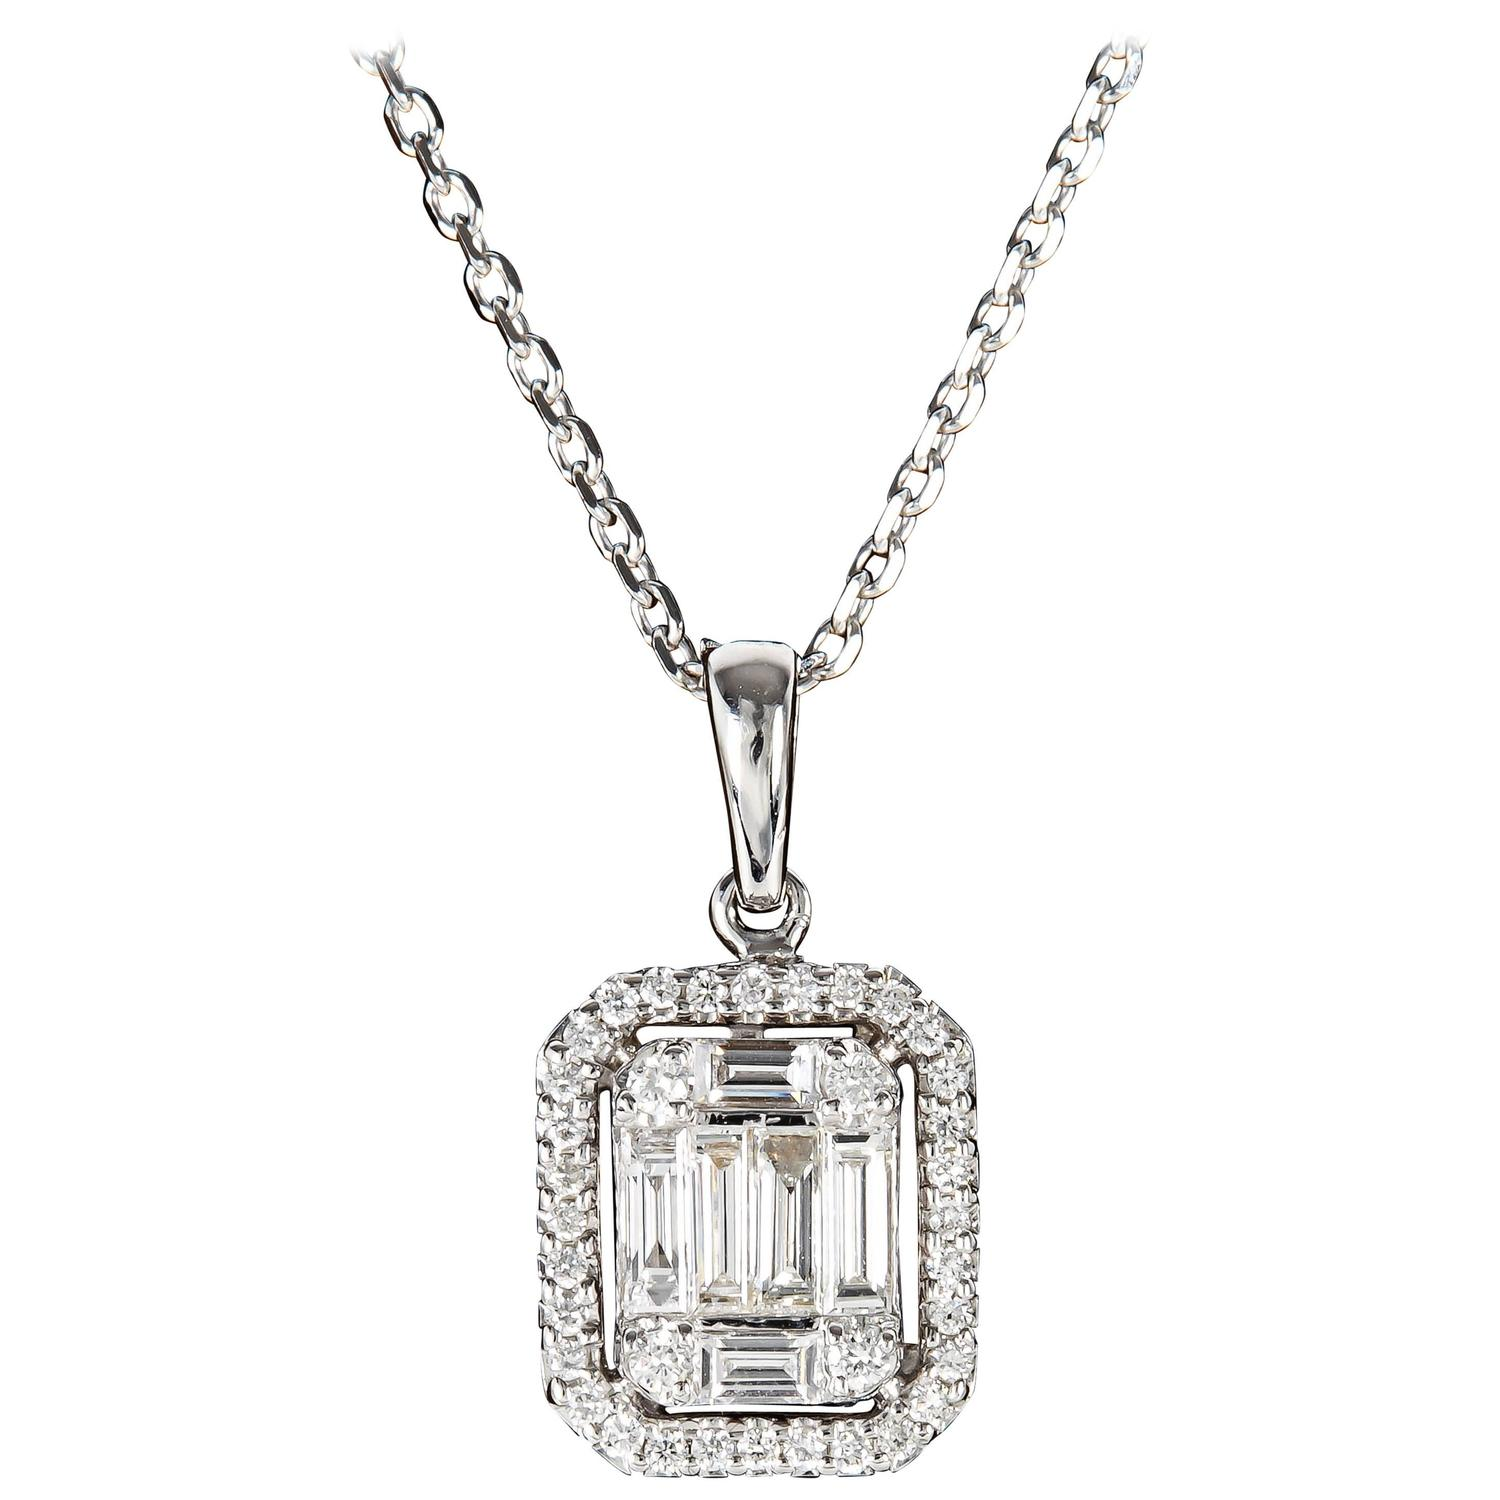 Illusion Emerald Cut Diamond Gold Pendant For Sale At 1stdibs